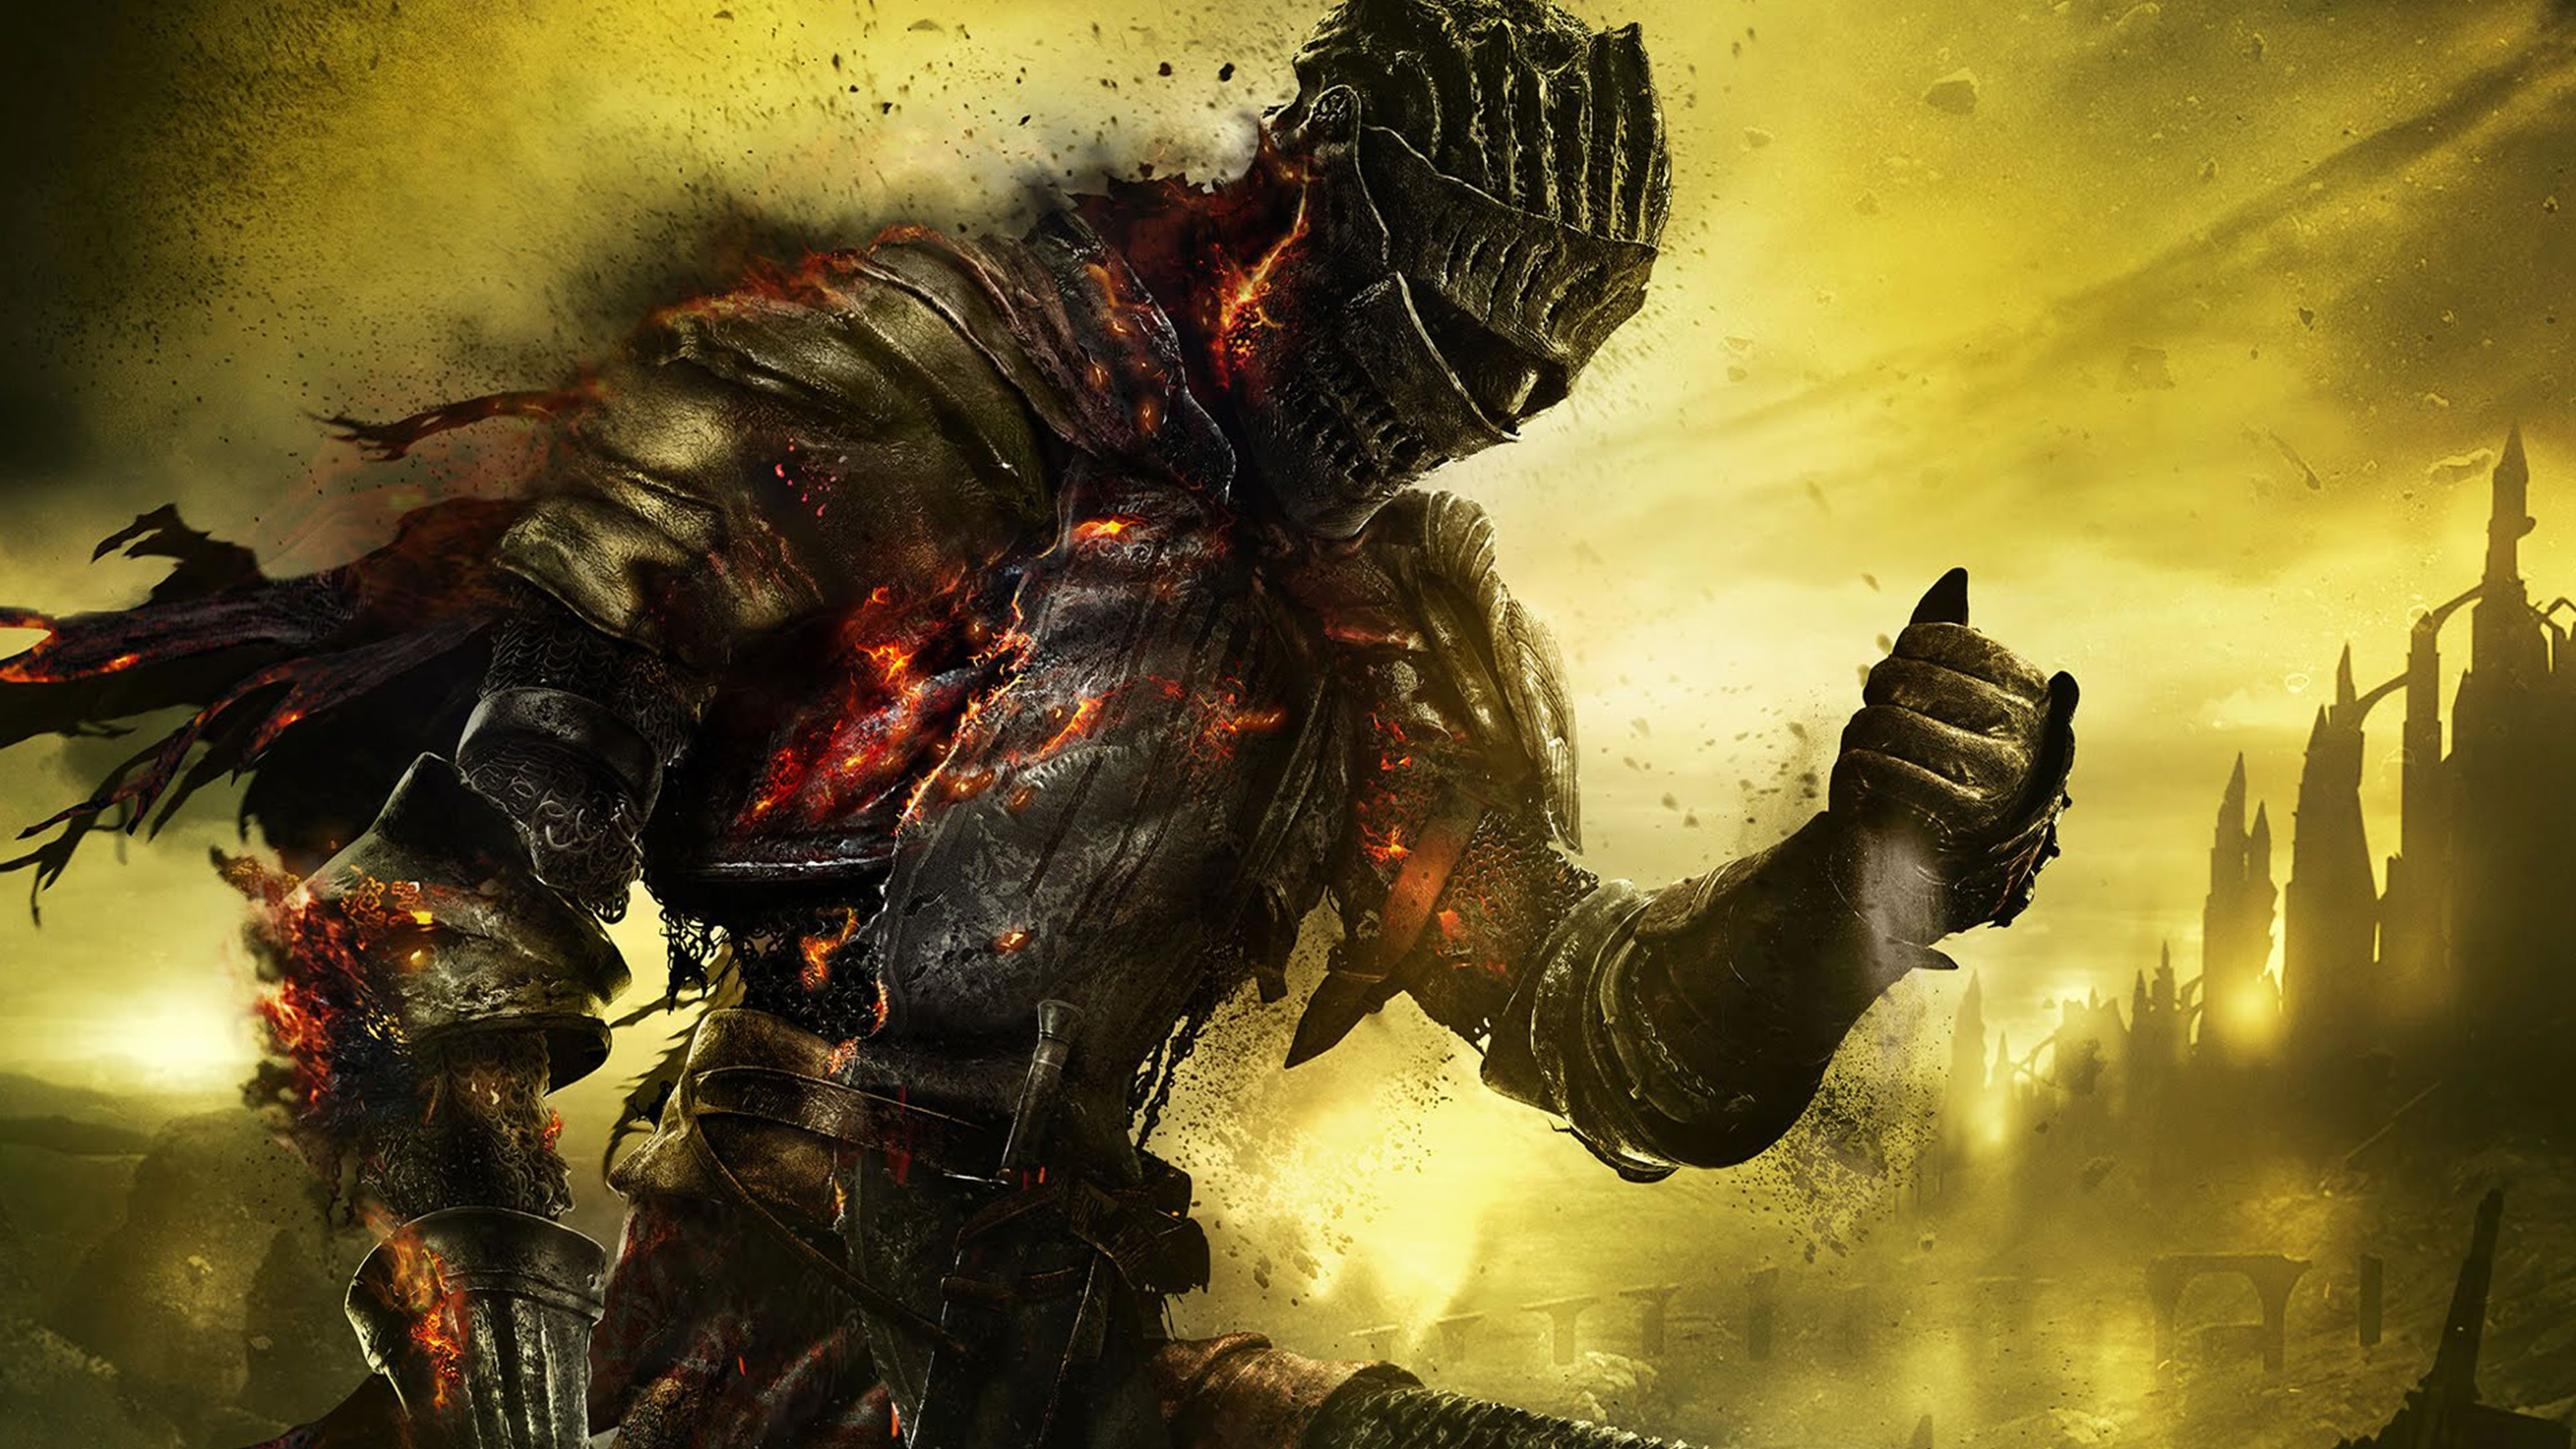 Wallpaper download abyss - Abyss Watcher Download Abyss Watcher Wallpaper